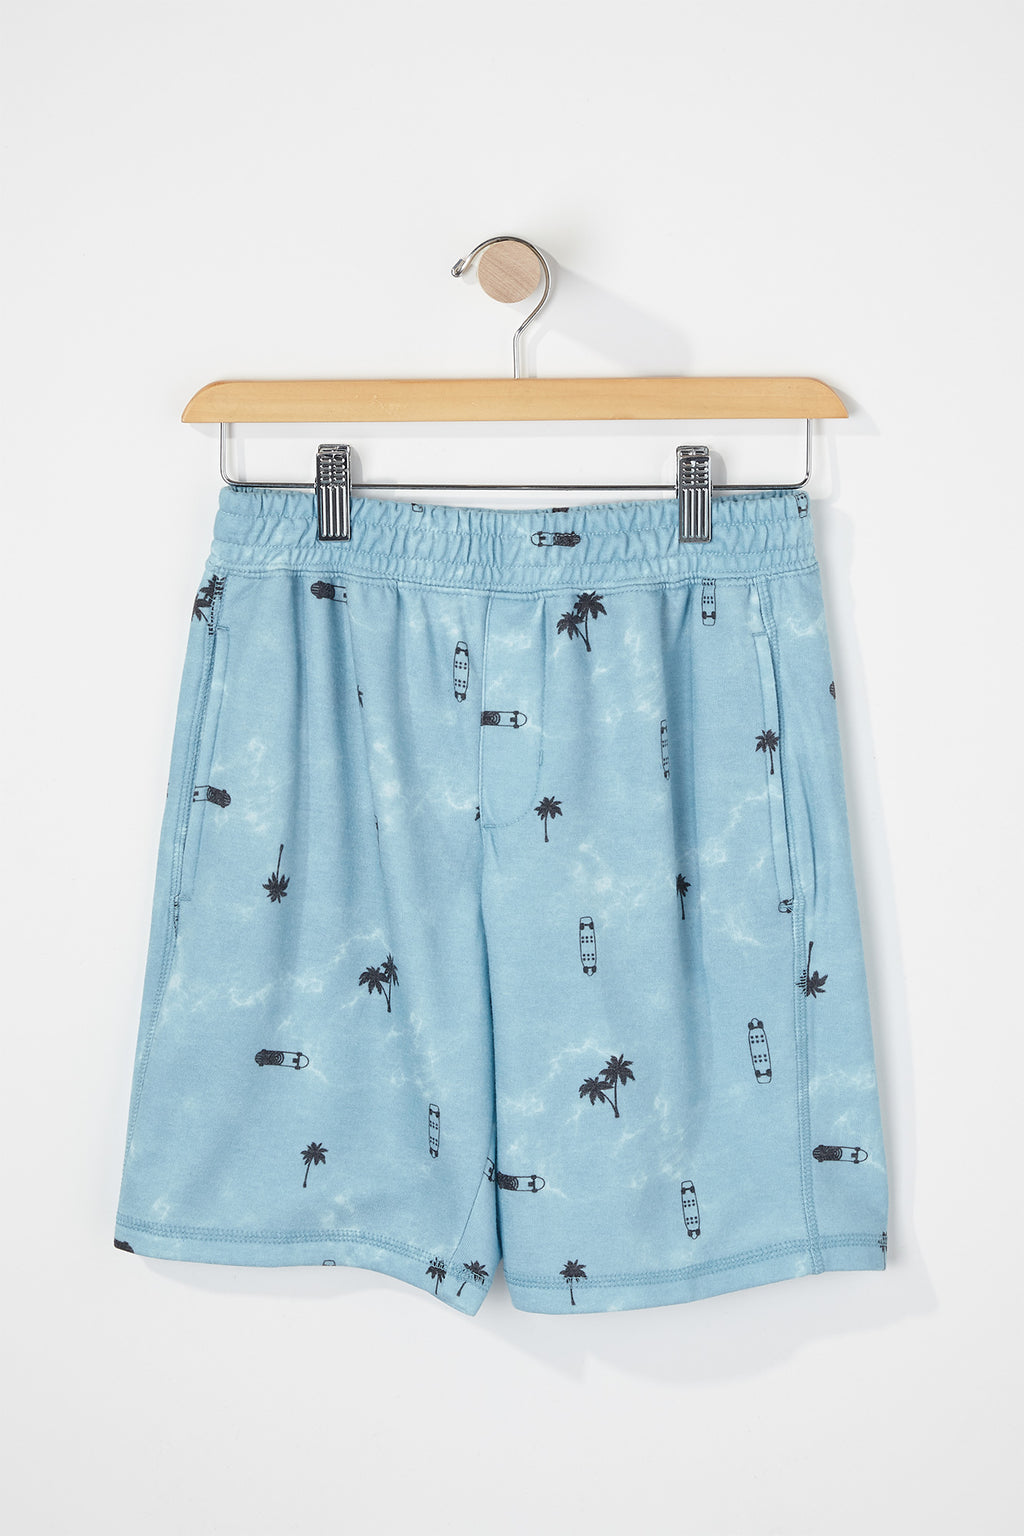 West49 Boys Tie-Dye Jogger Shorts